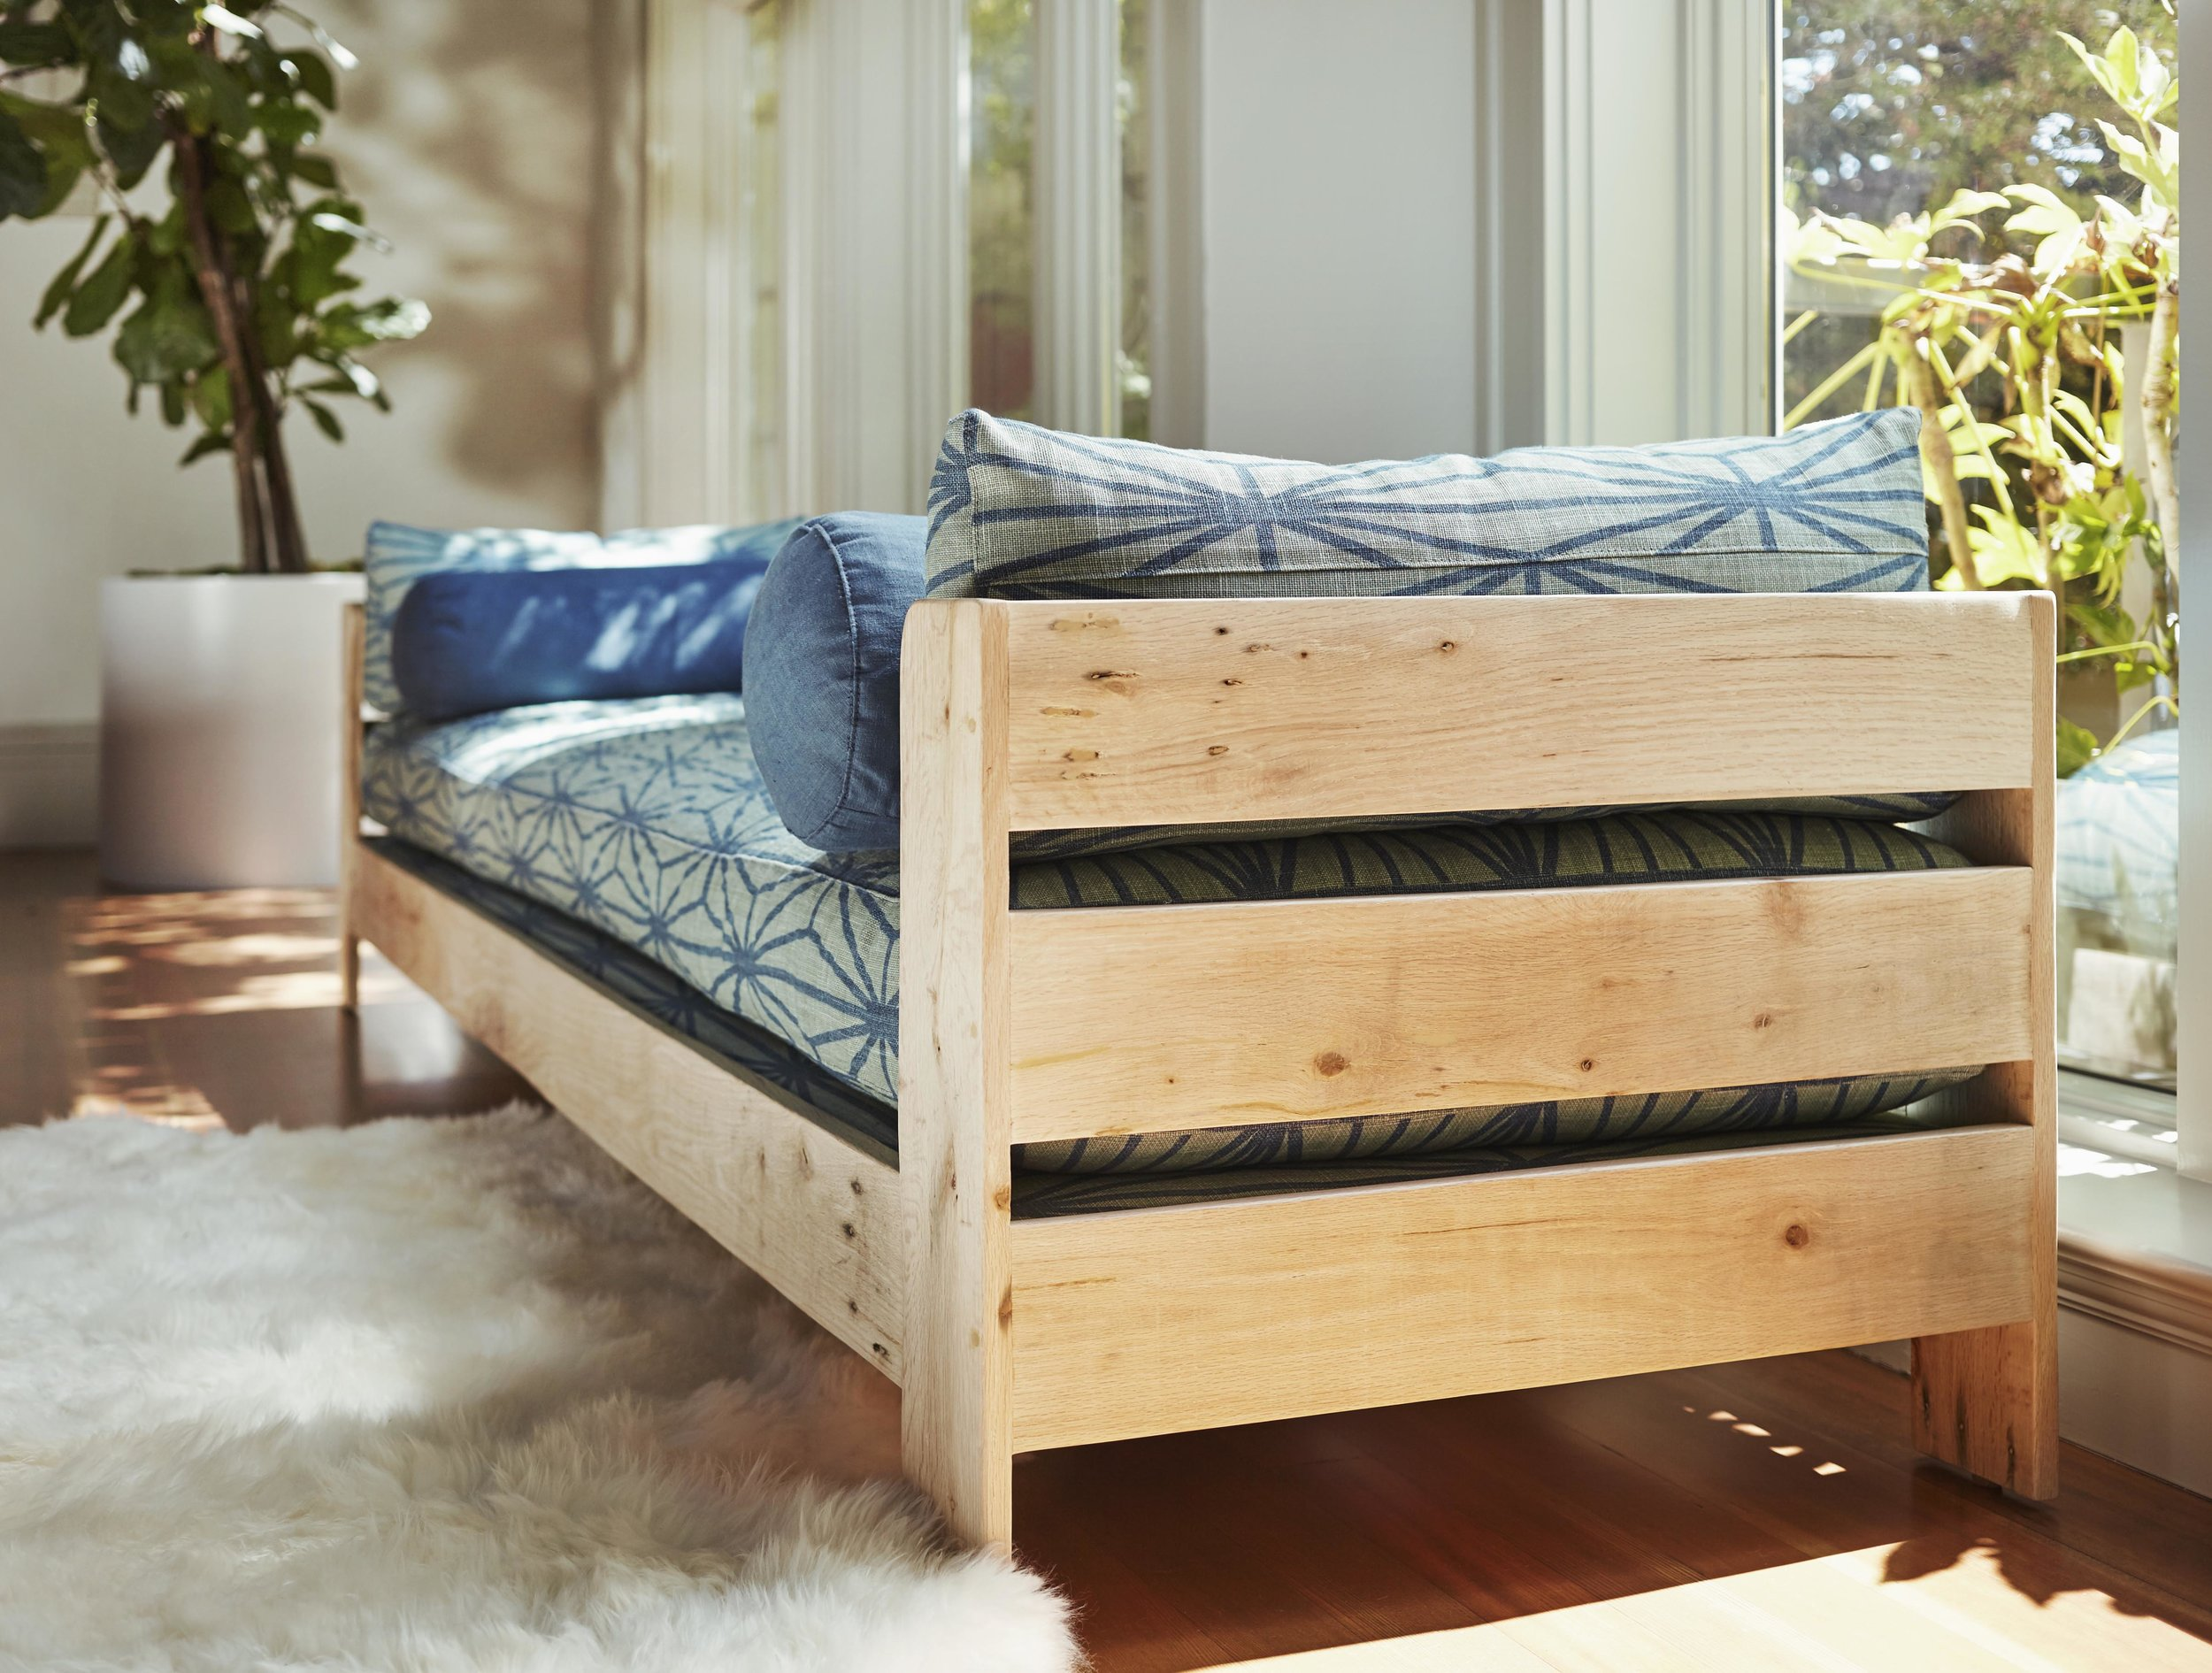 143Albion Day bed.jpg